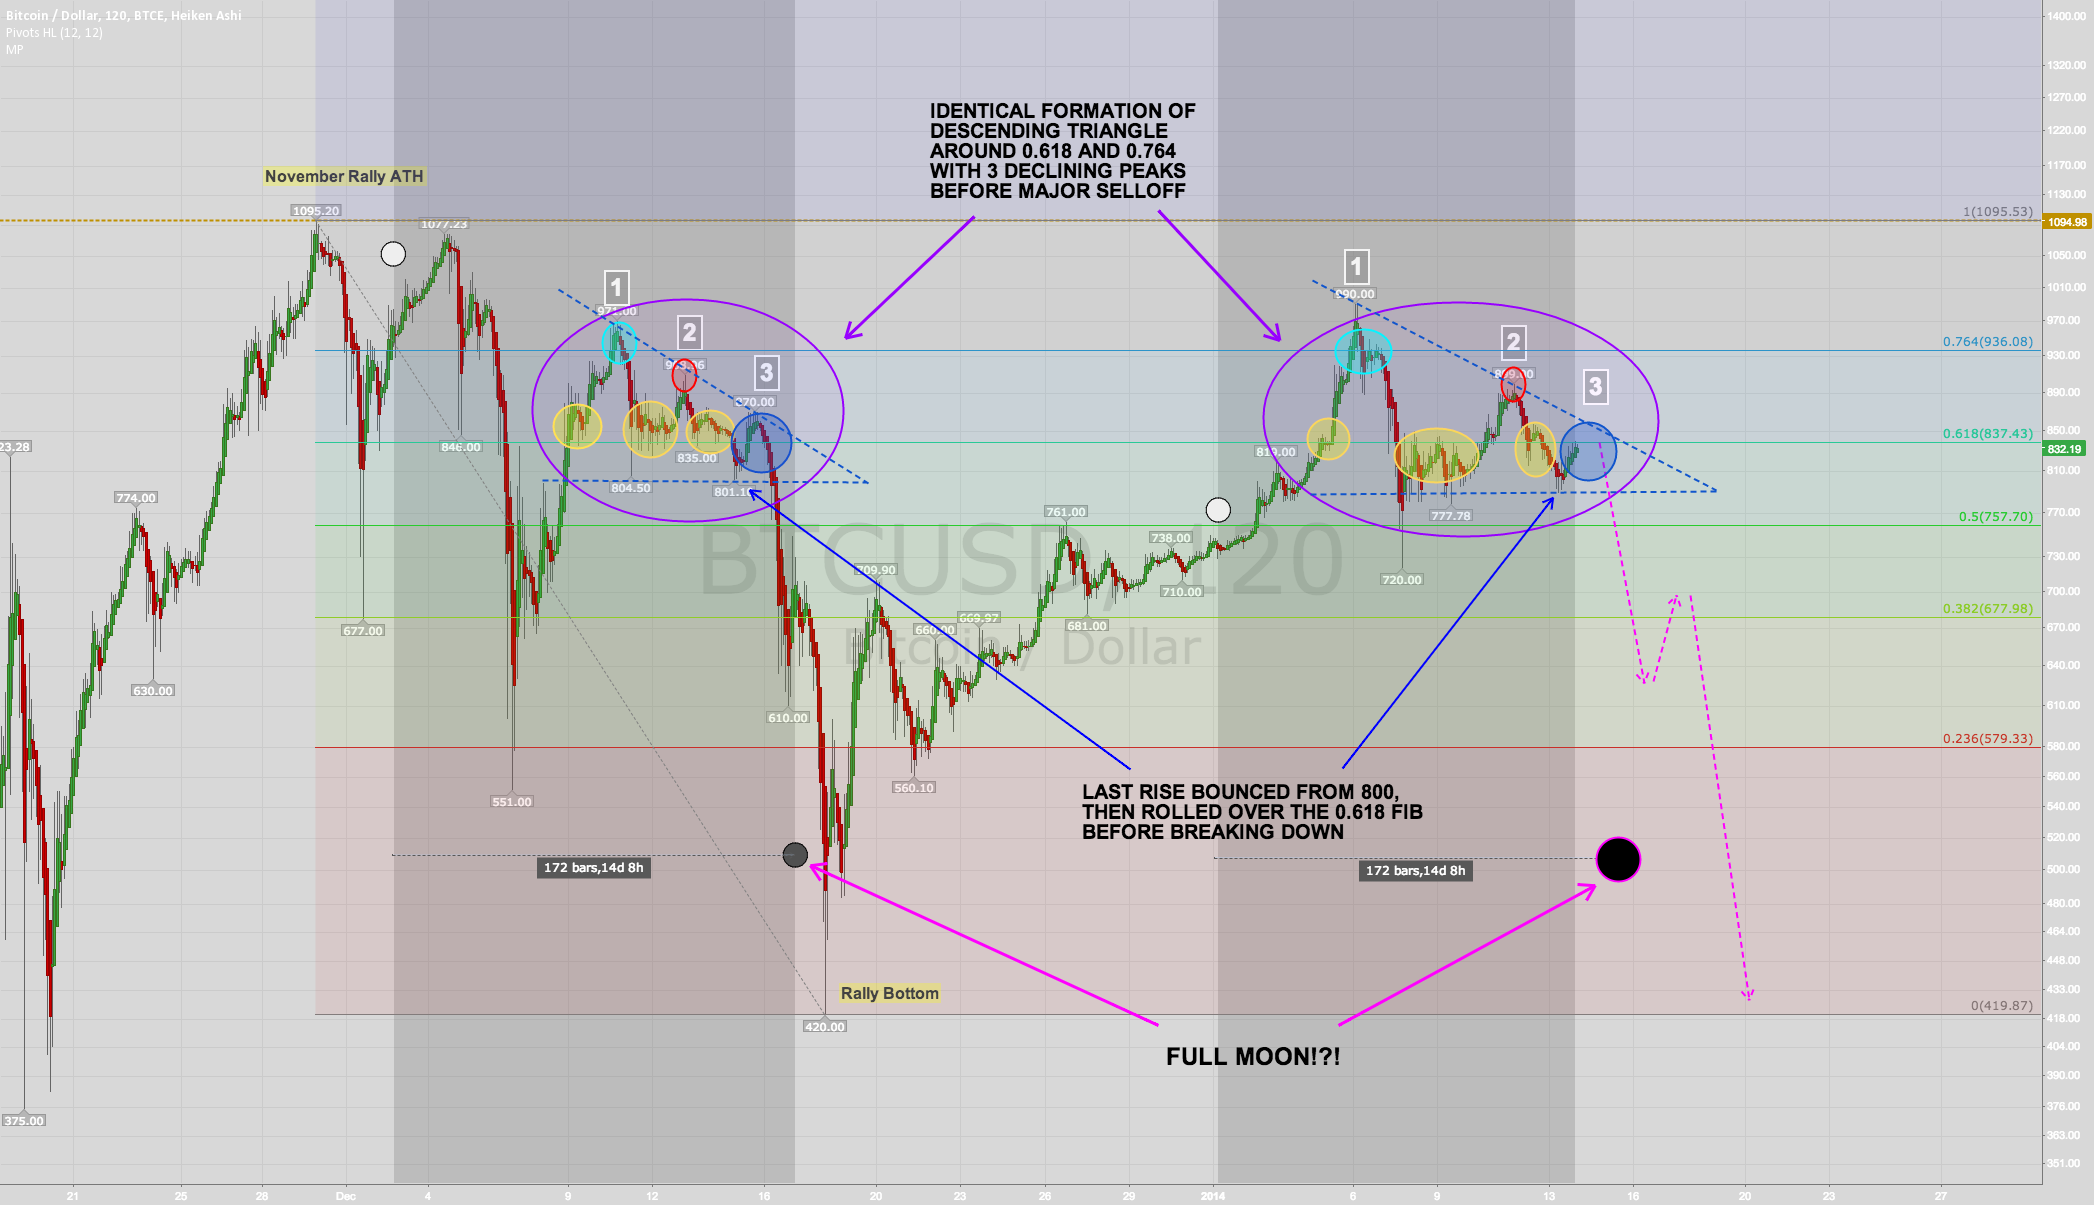 Current descending triangle pattern shockingly similar +moons!